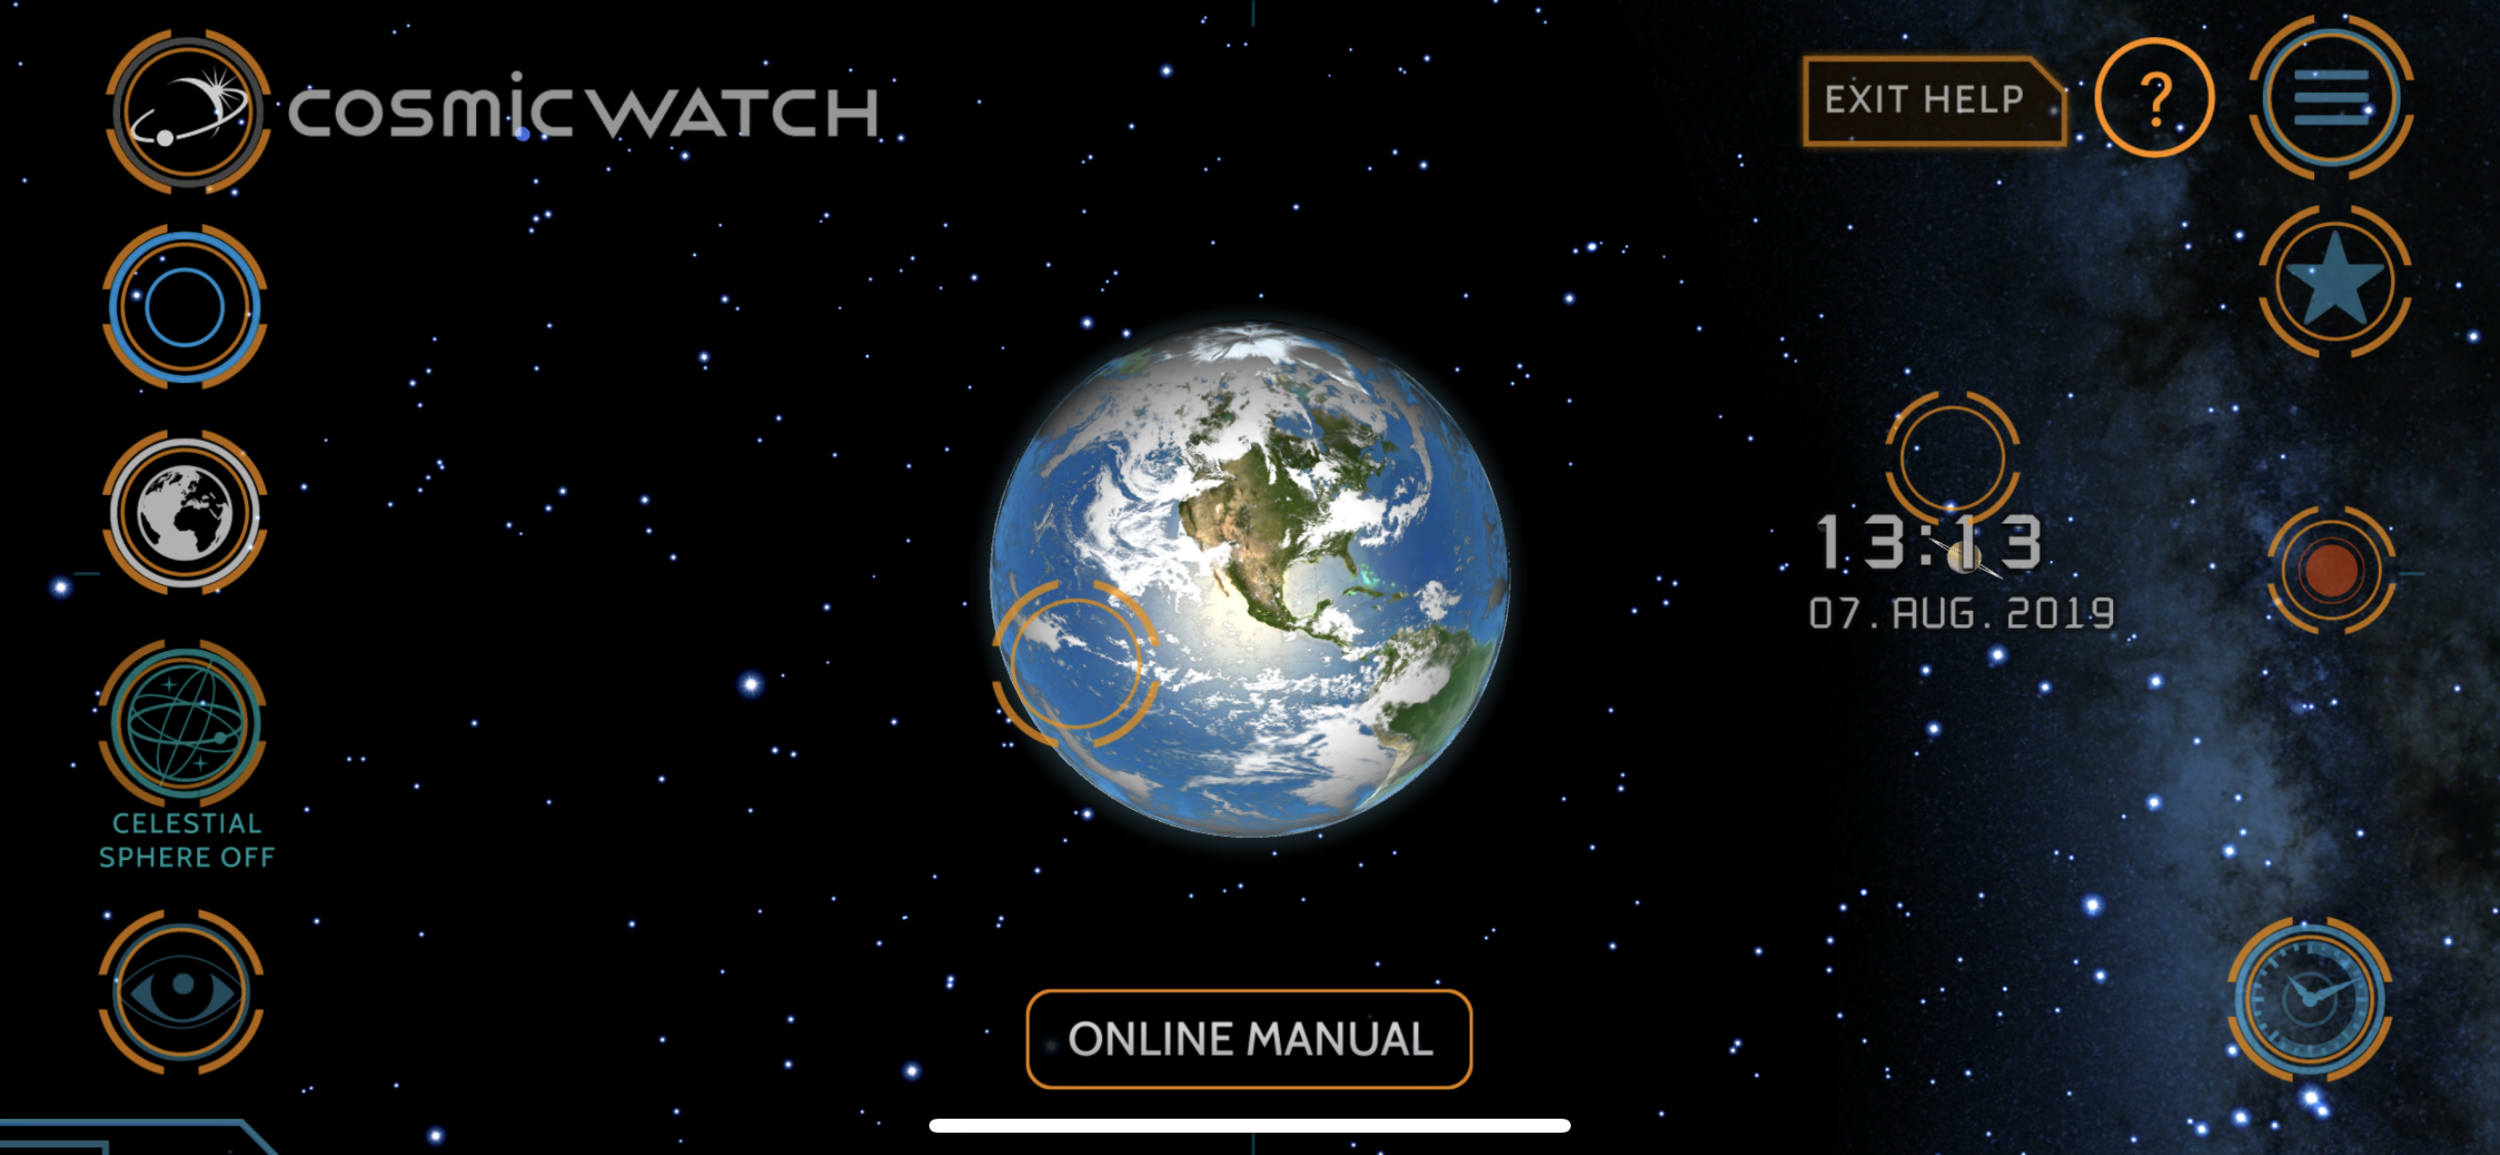 Cosmic Watch's built-in help mode provides hints and tips with a tap on the orange outlined objects